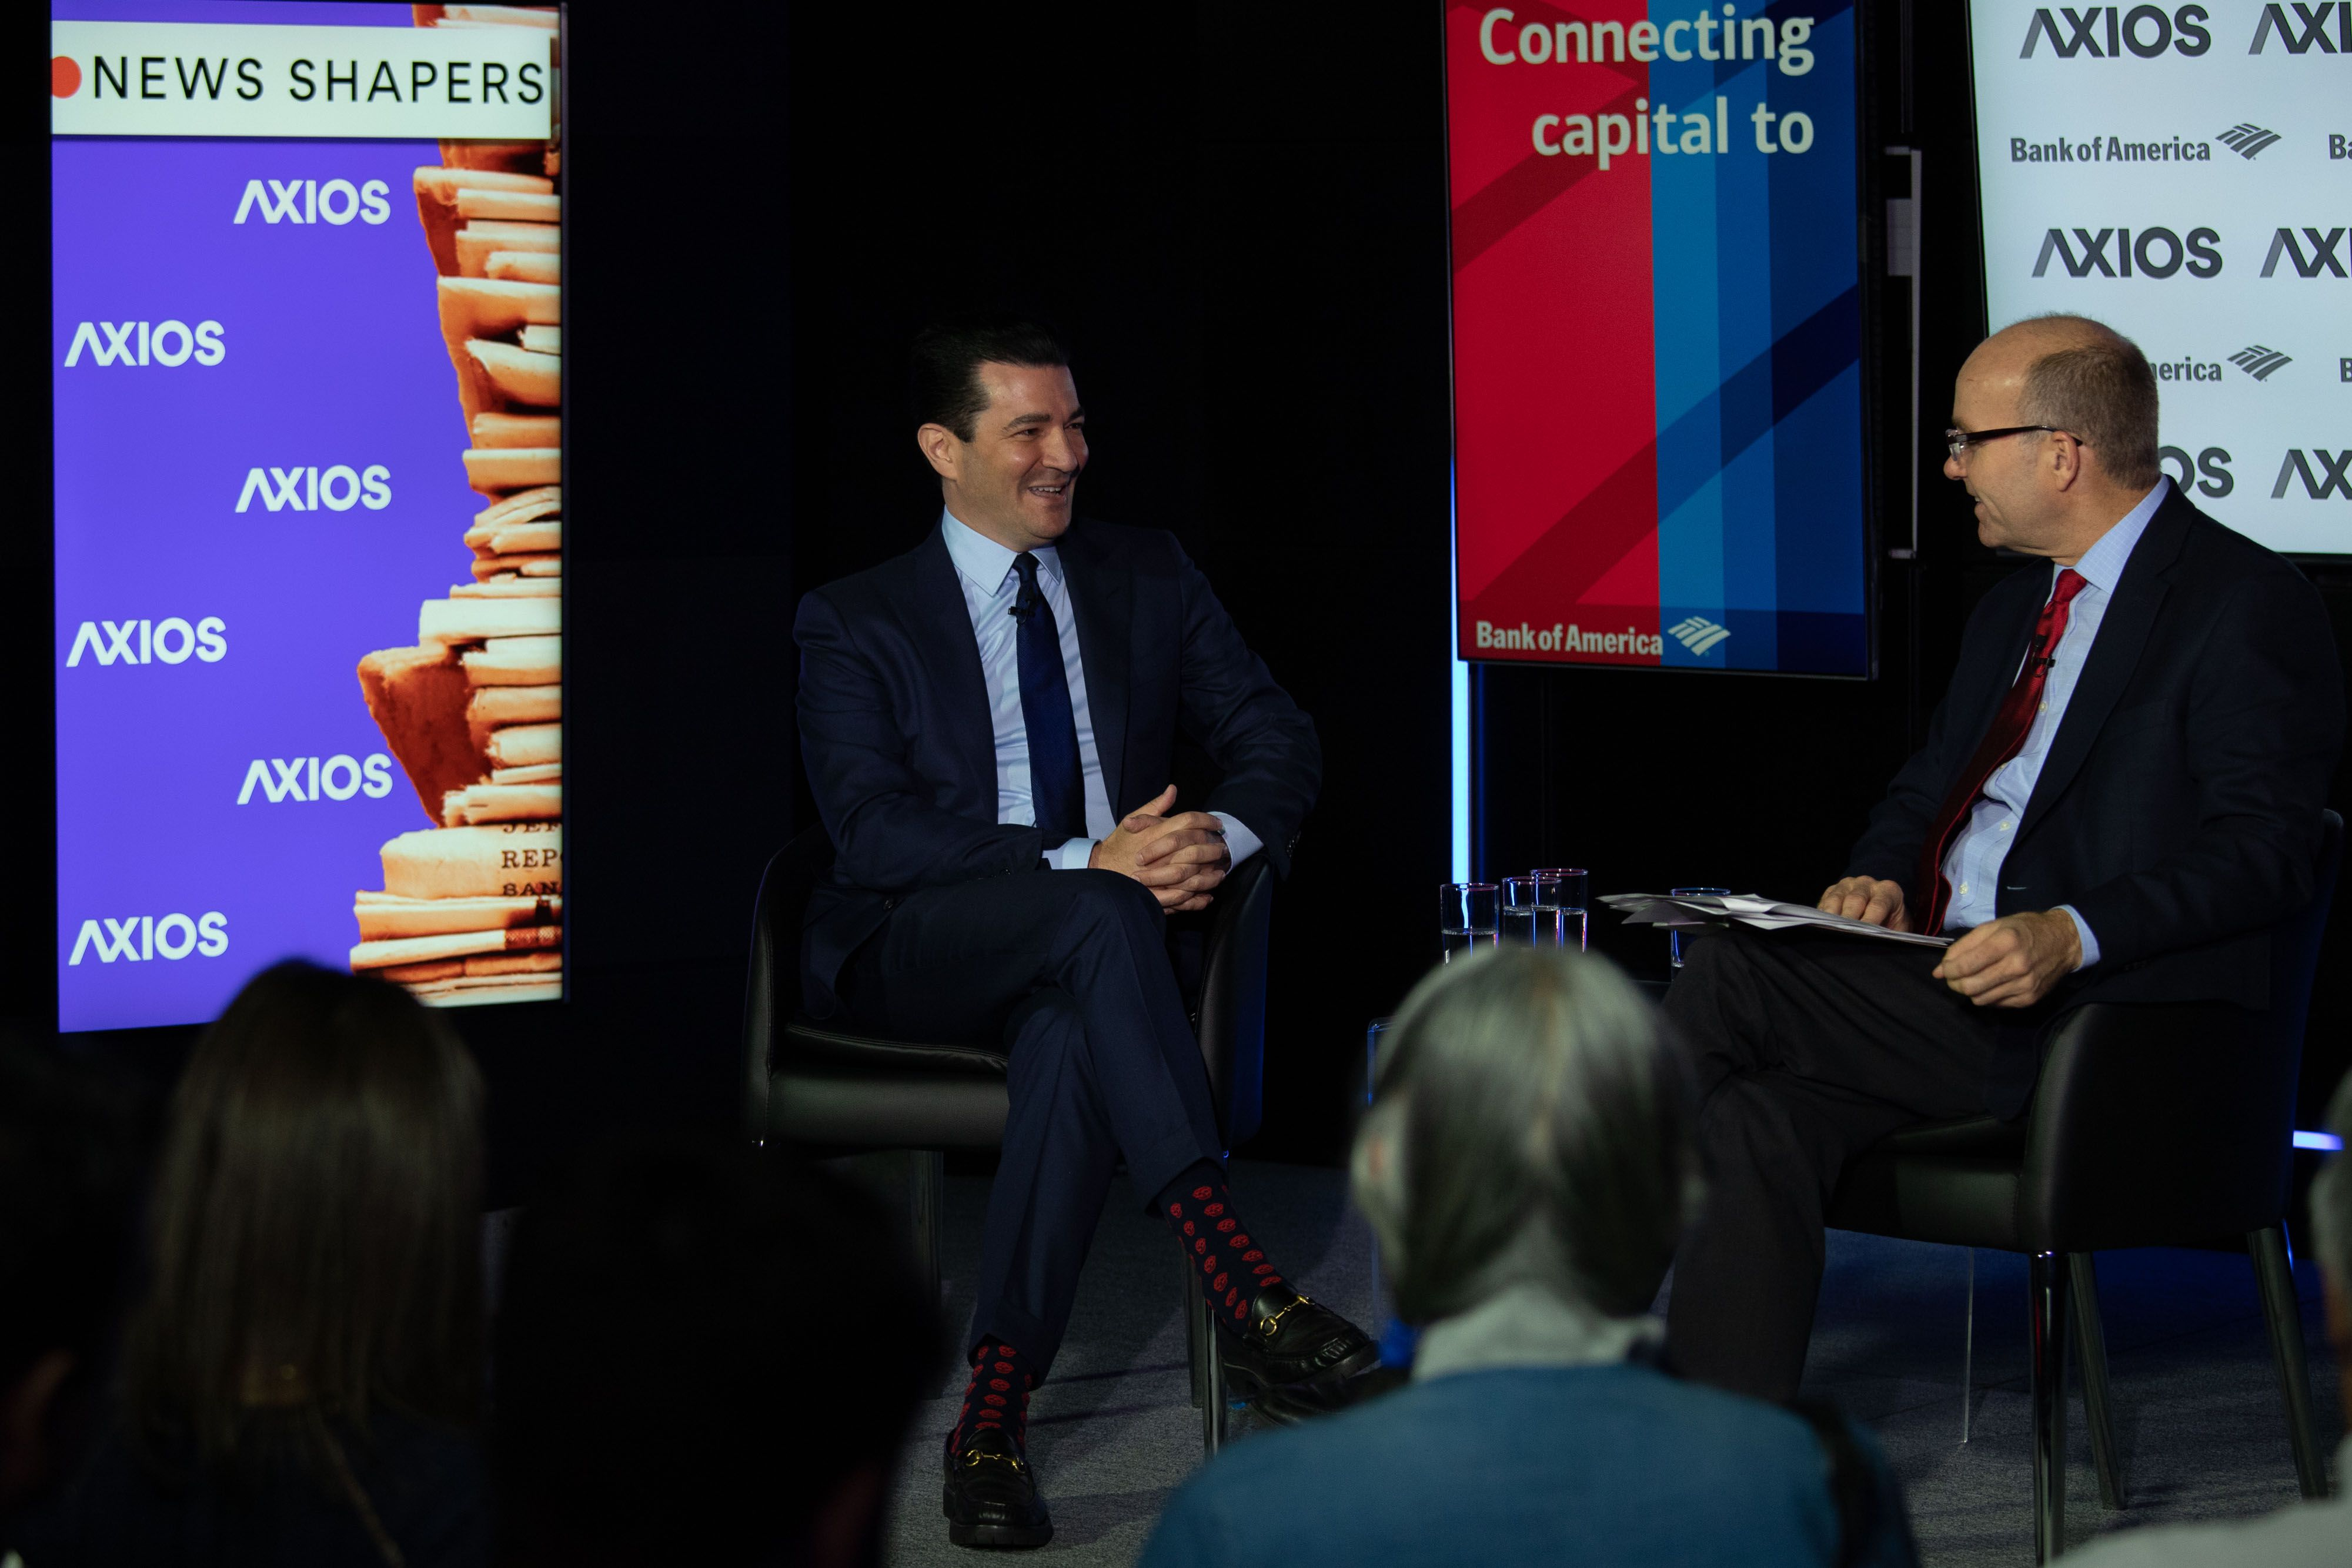 FDA Commissioner Scott Gottlieb on the Axios stage